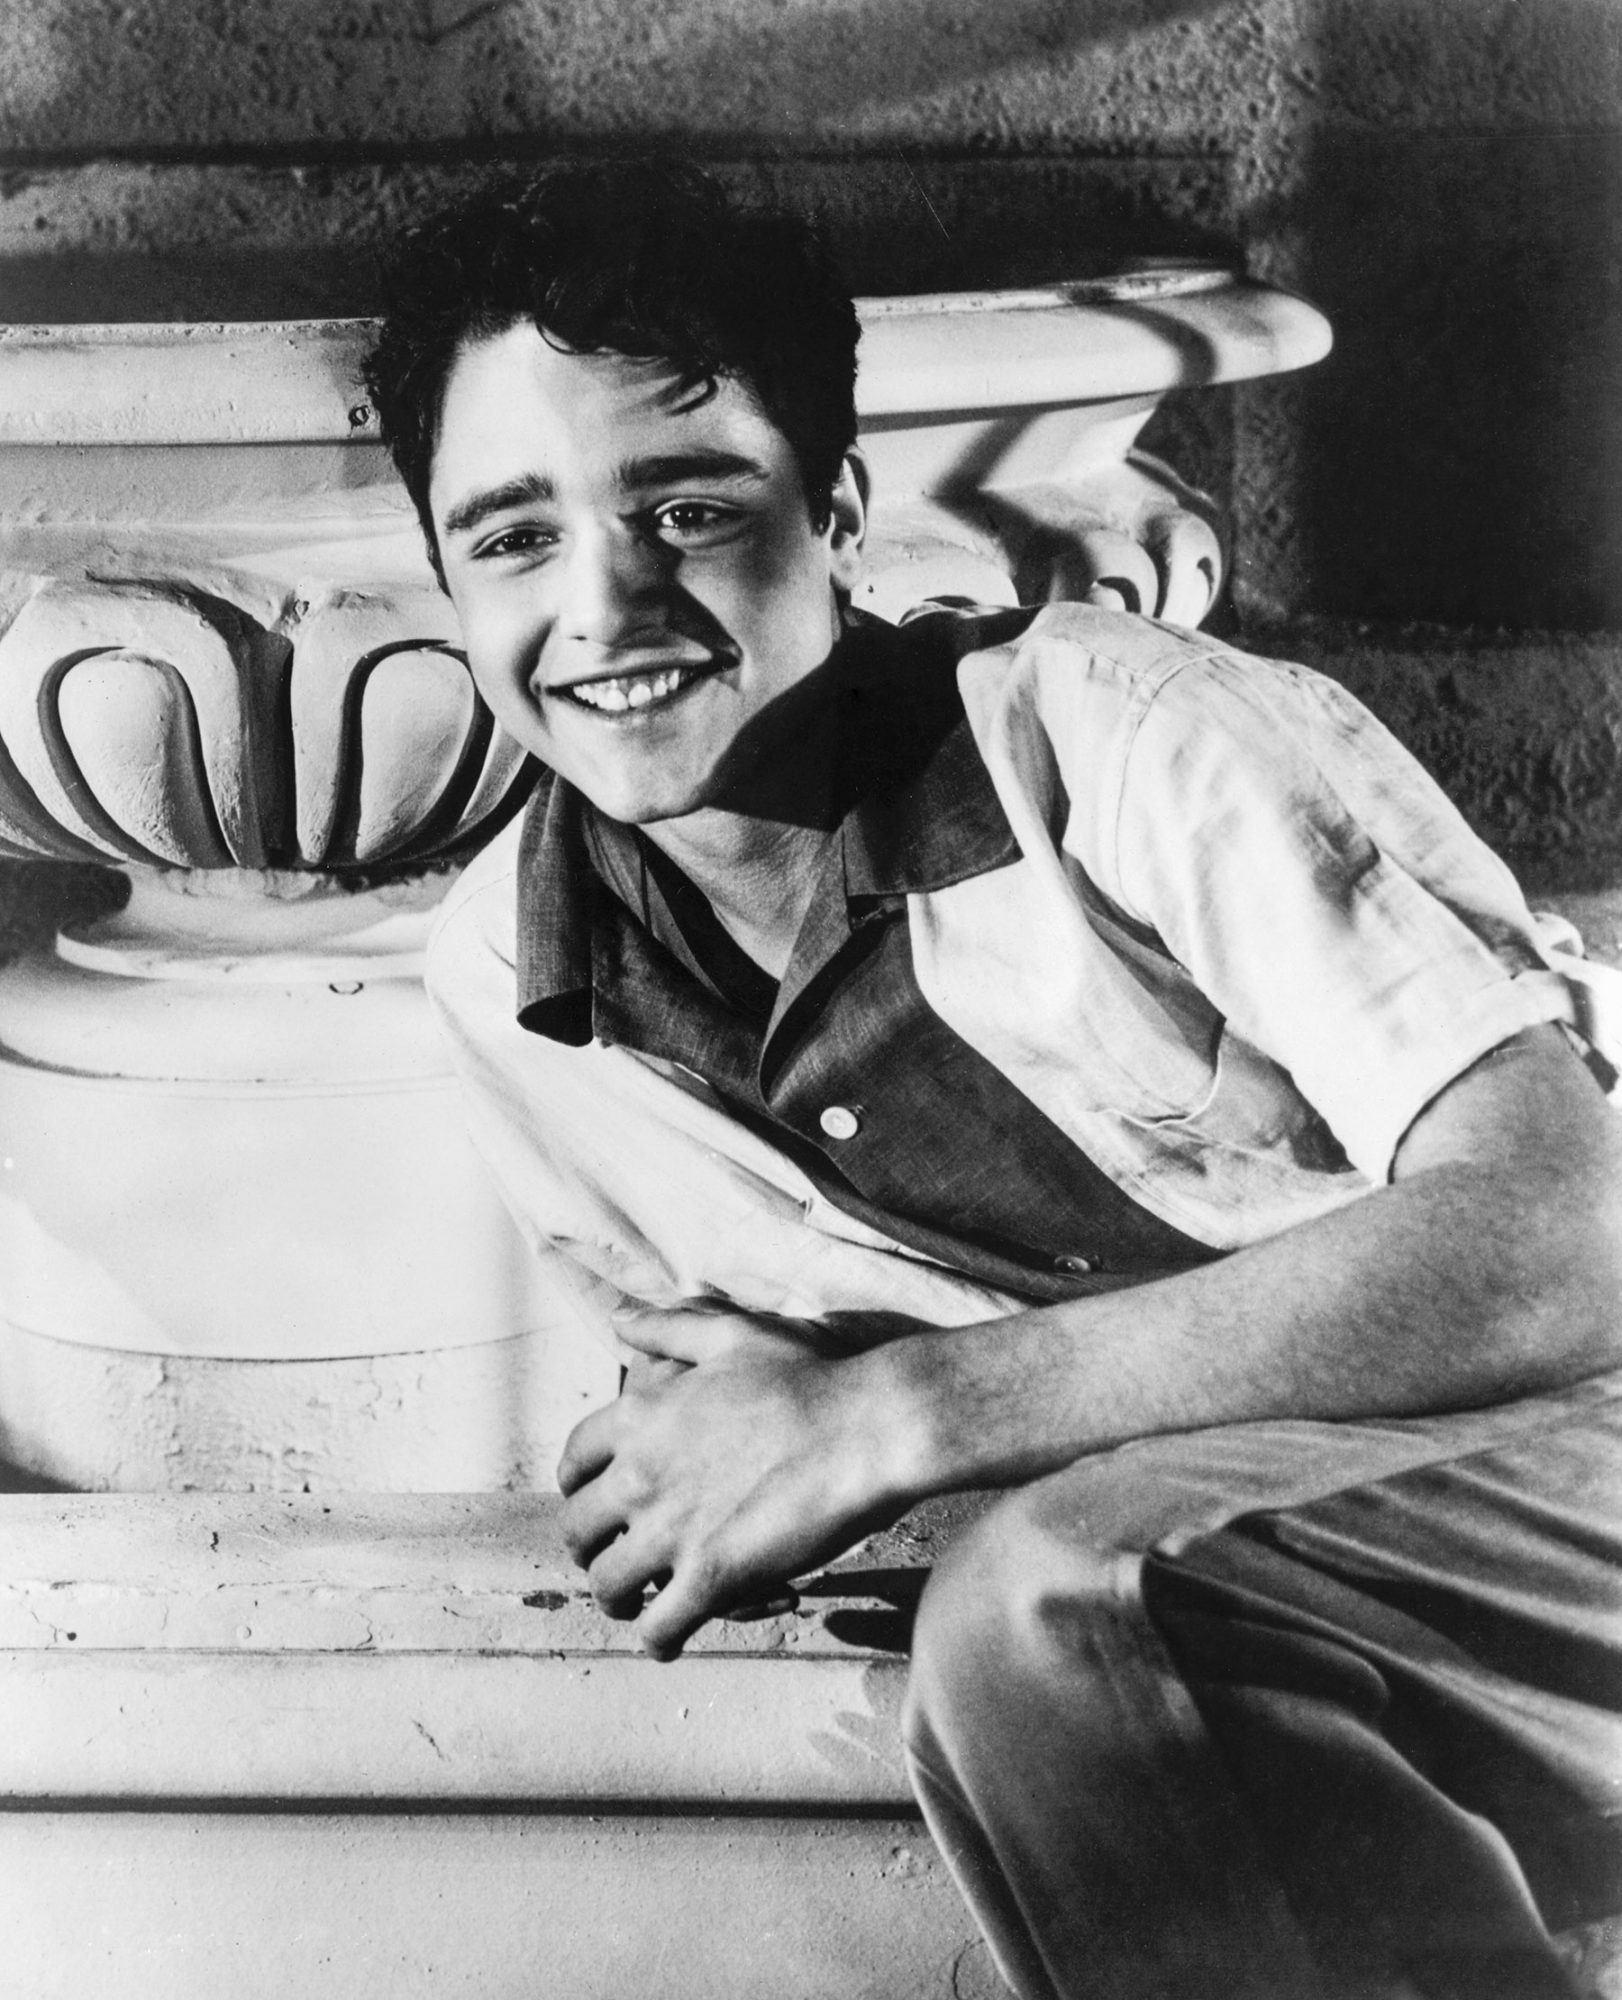 REBEL WITHOUT A CAUSE, Sal Mineo on the set, 1955